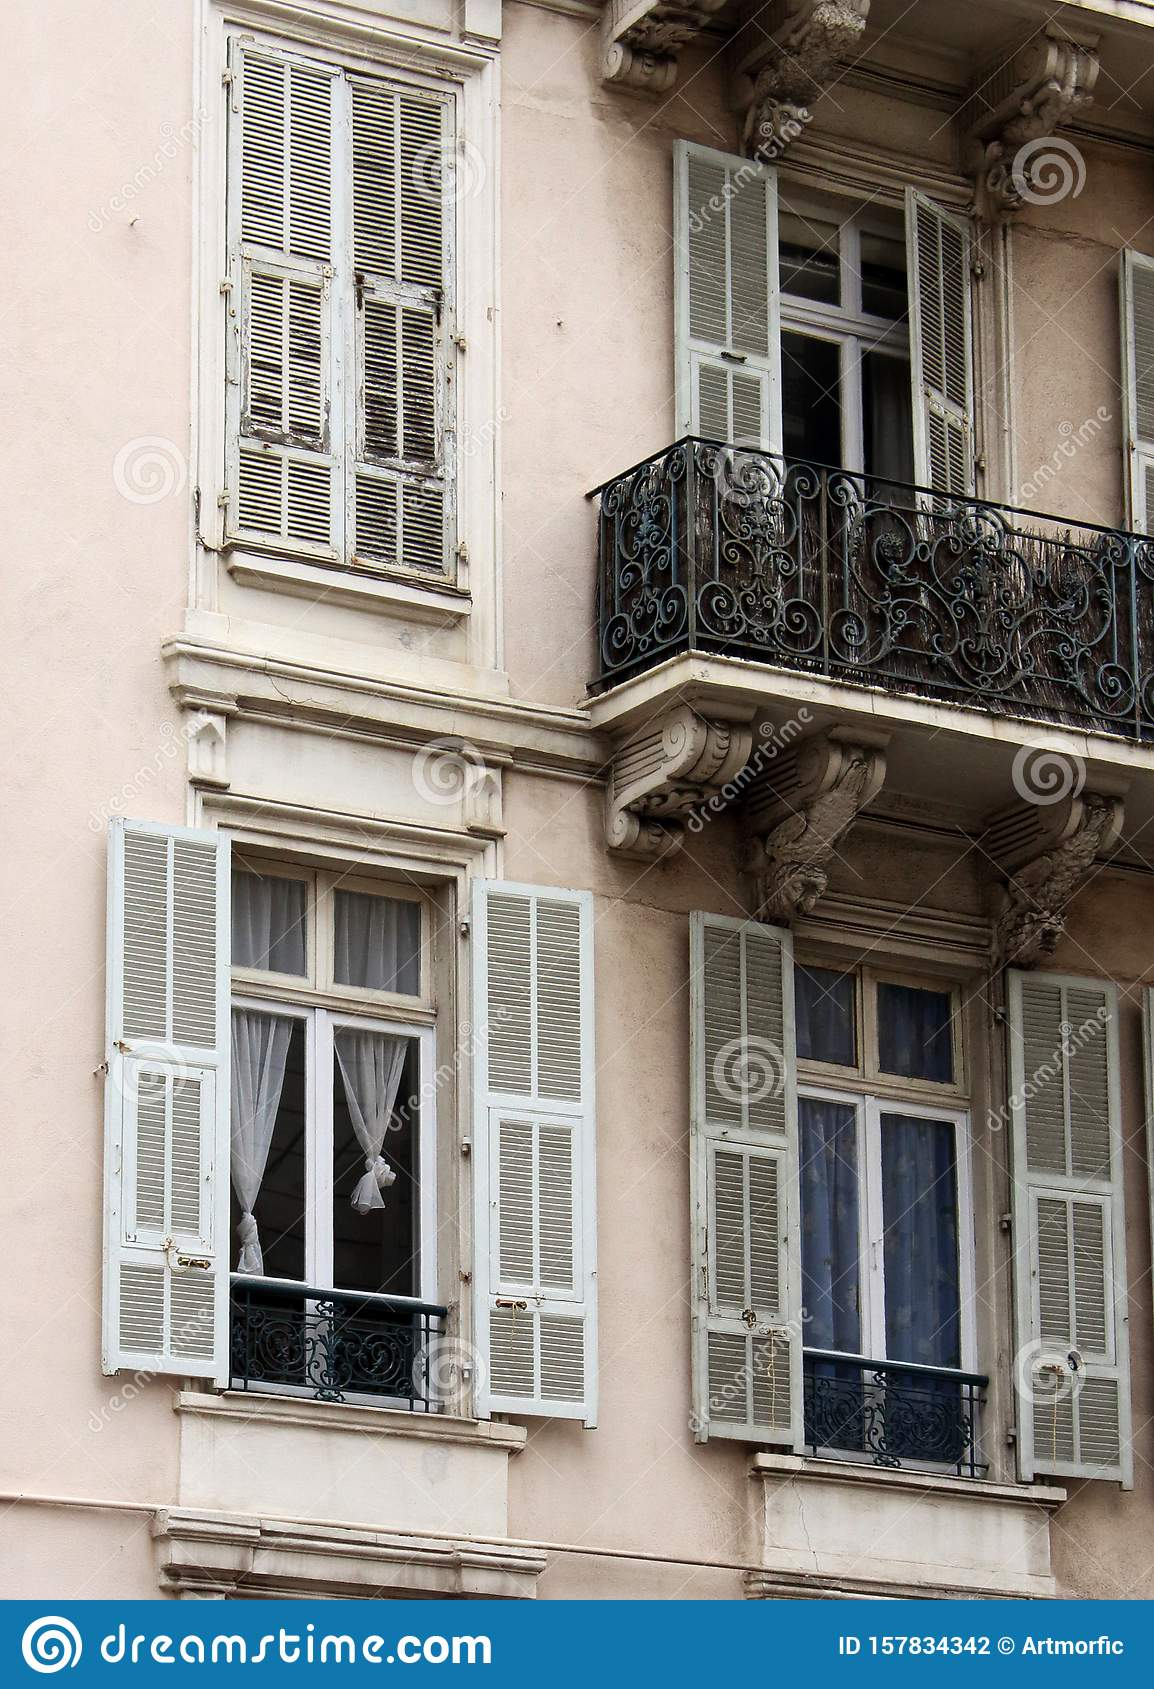 European Architectural Building With Balconies And Window ...